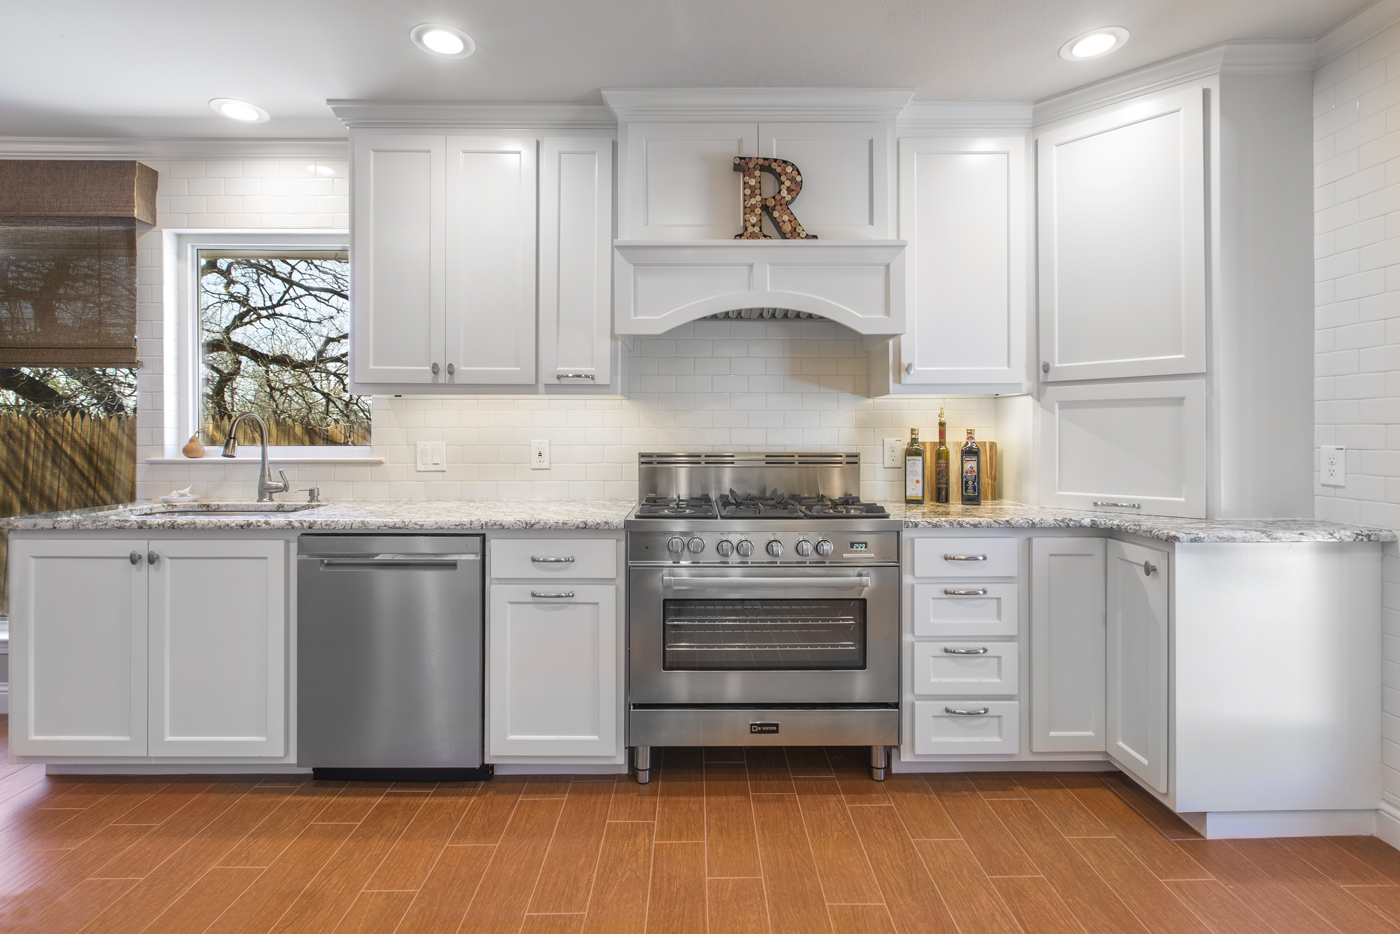 Update Your Kitchen Cabinets With These 5 Tips Medford Design Build